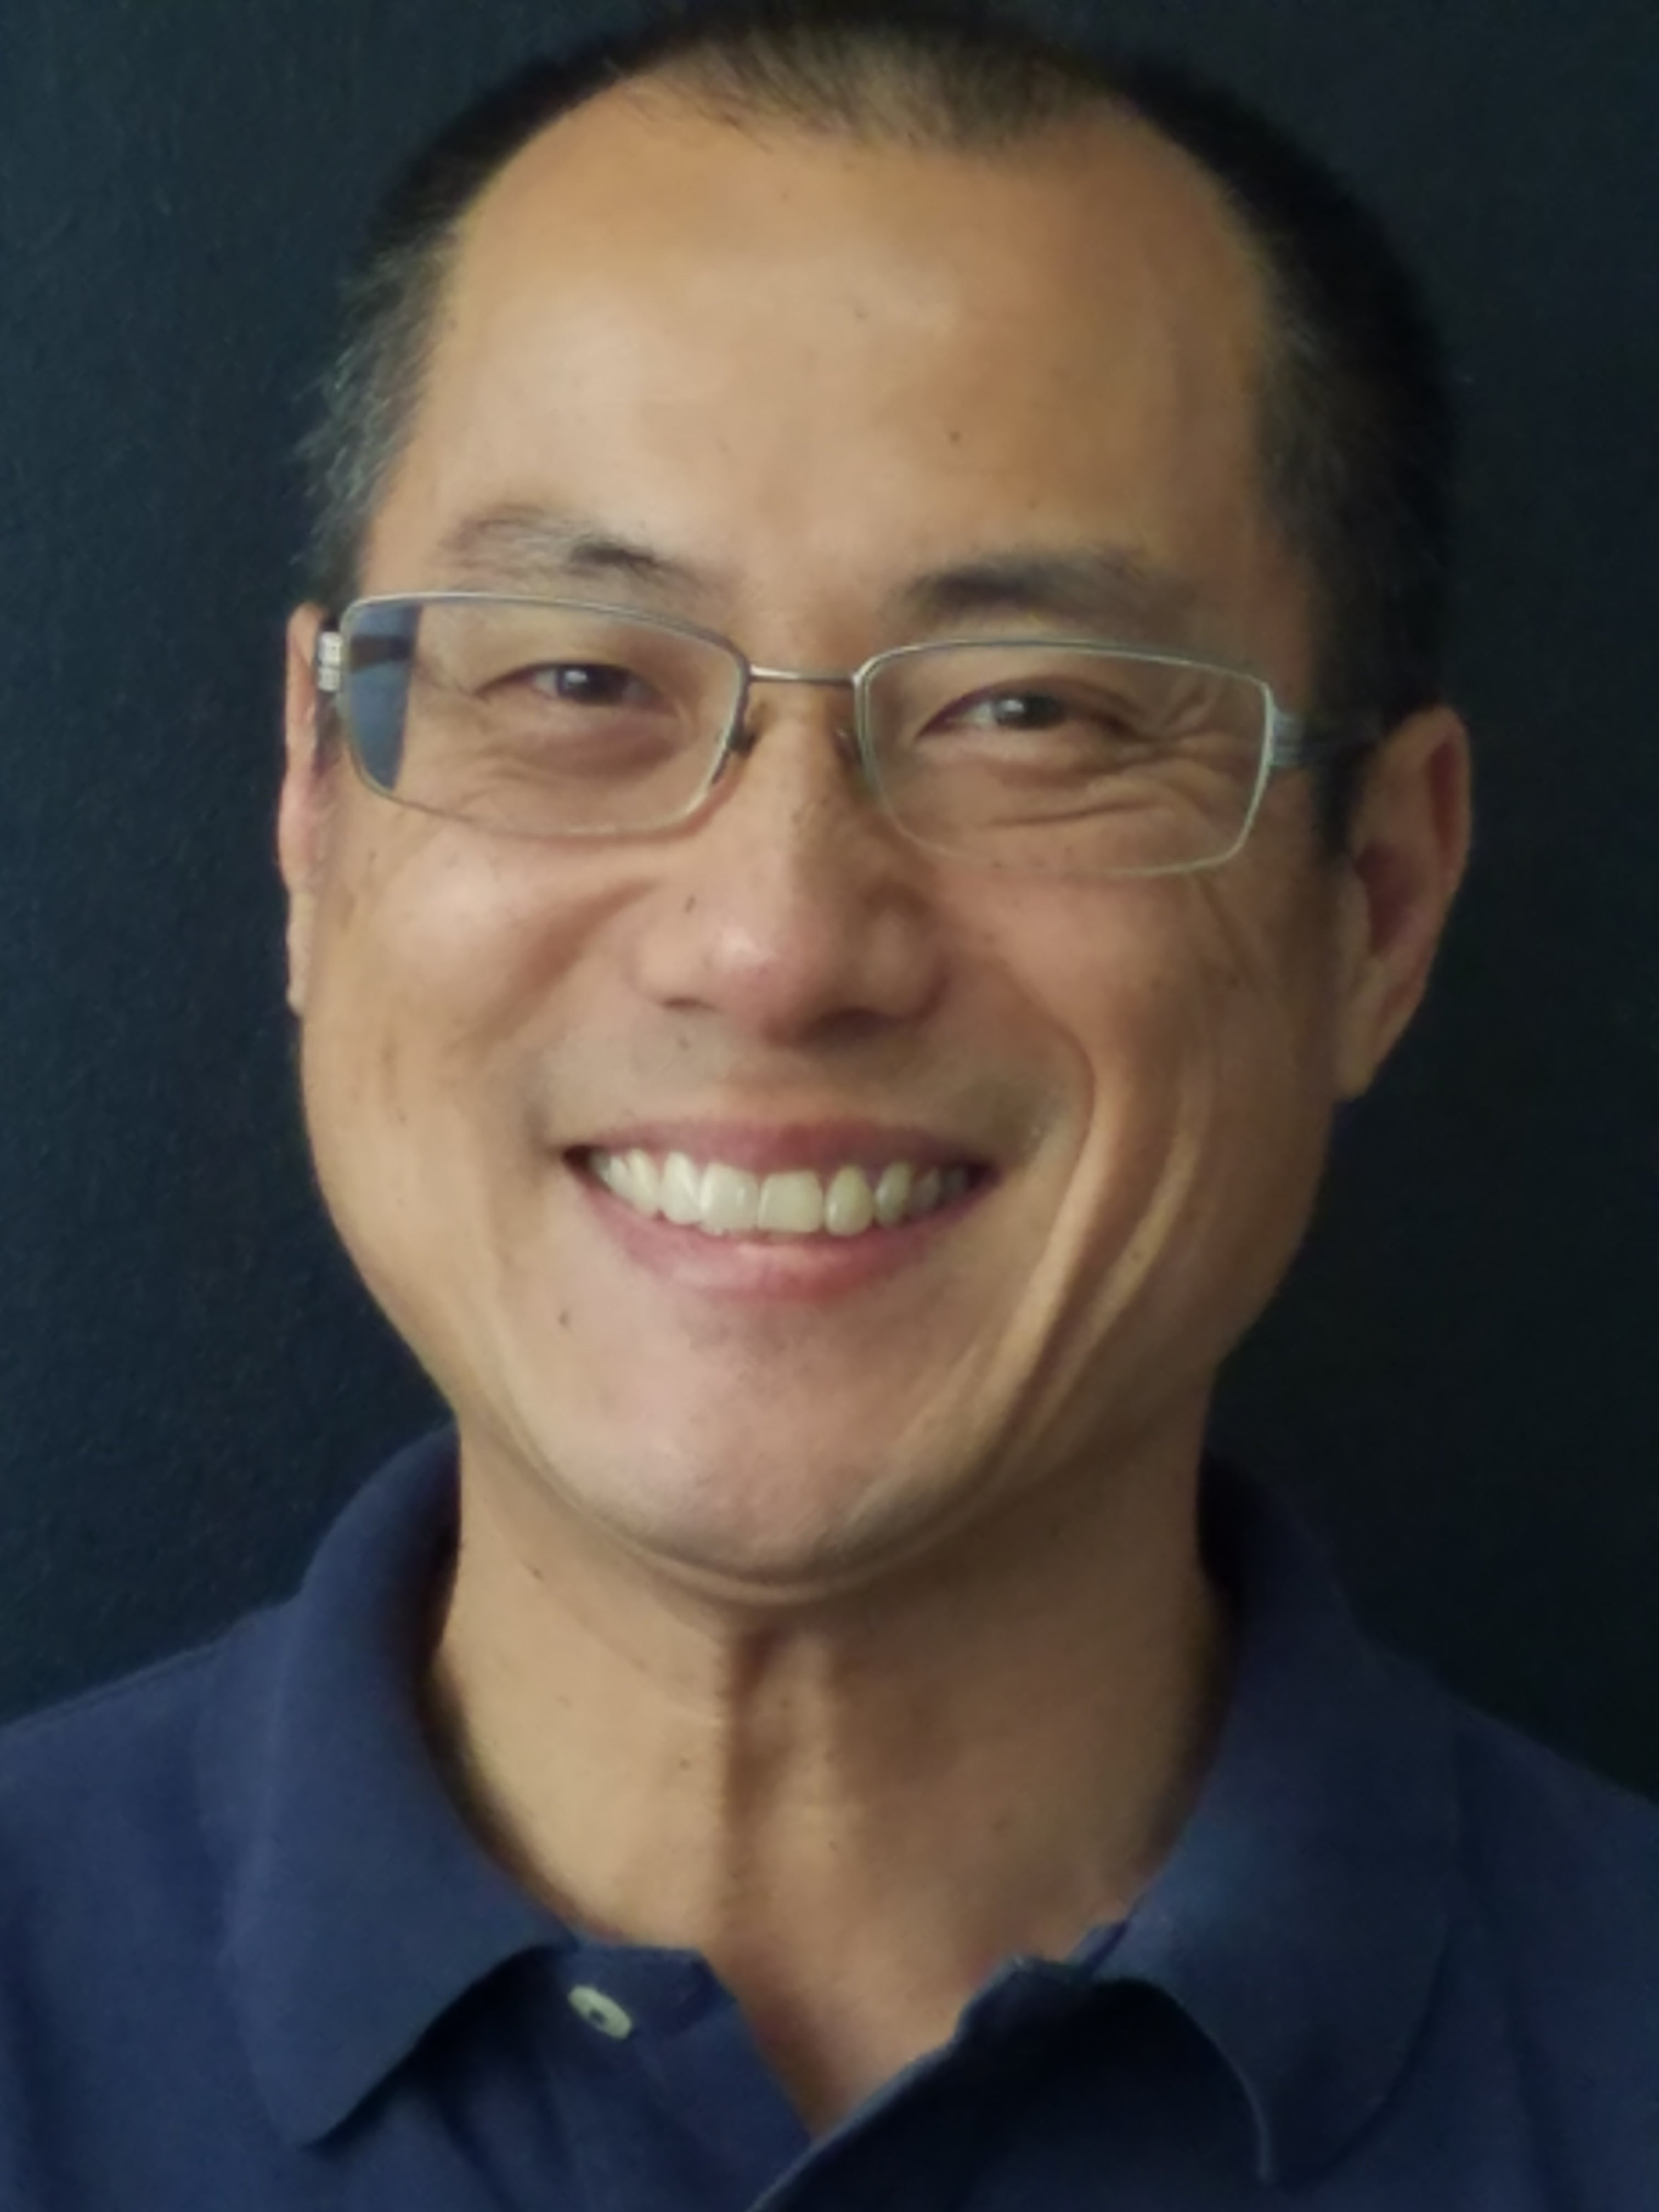 Image of Brady Chin